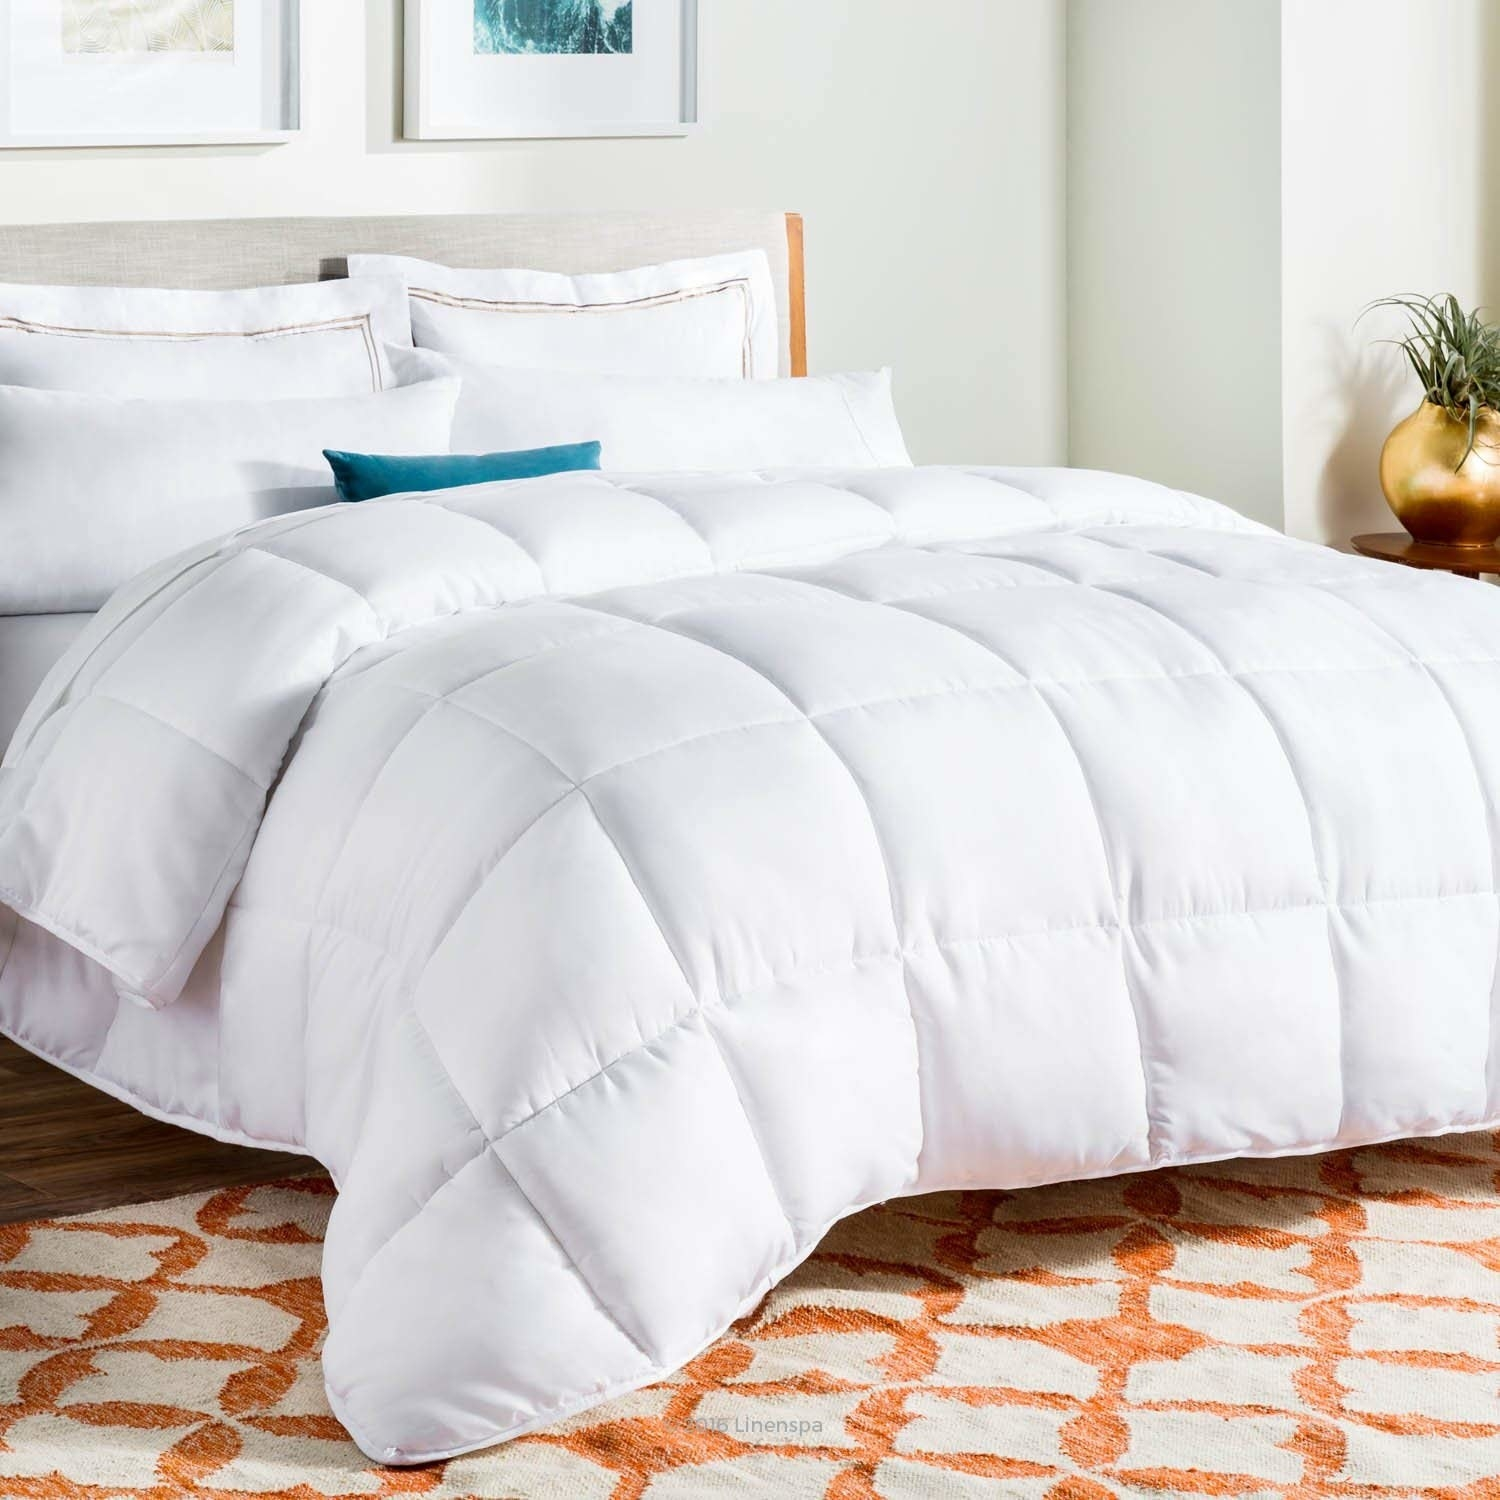 The large, puffy white comforter